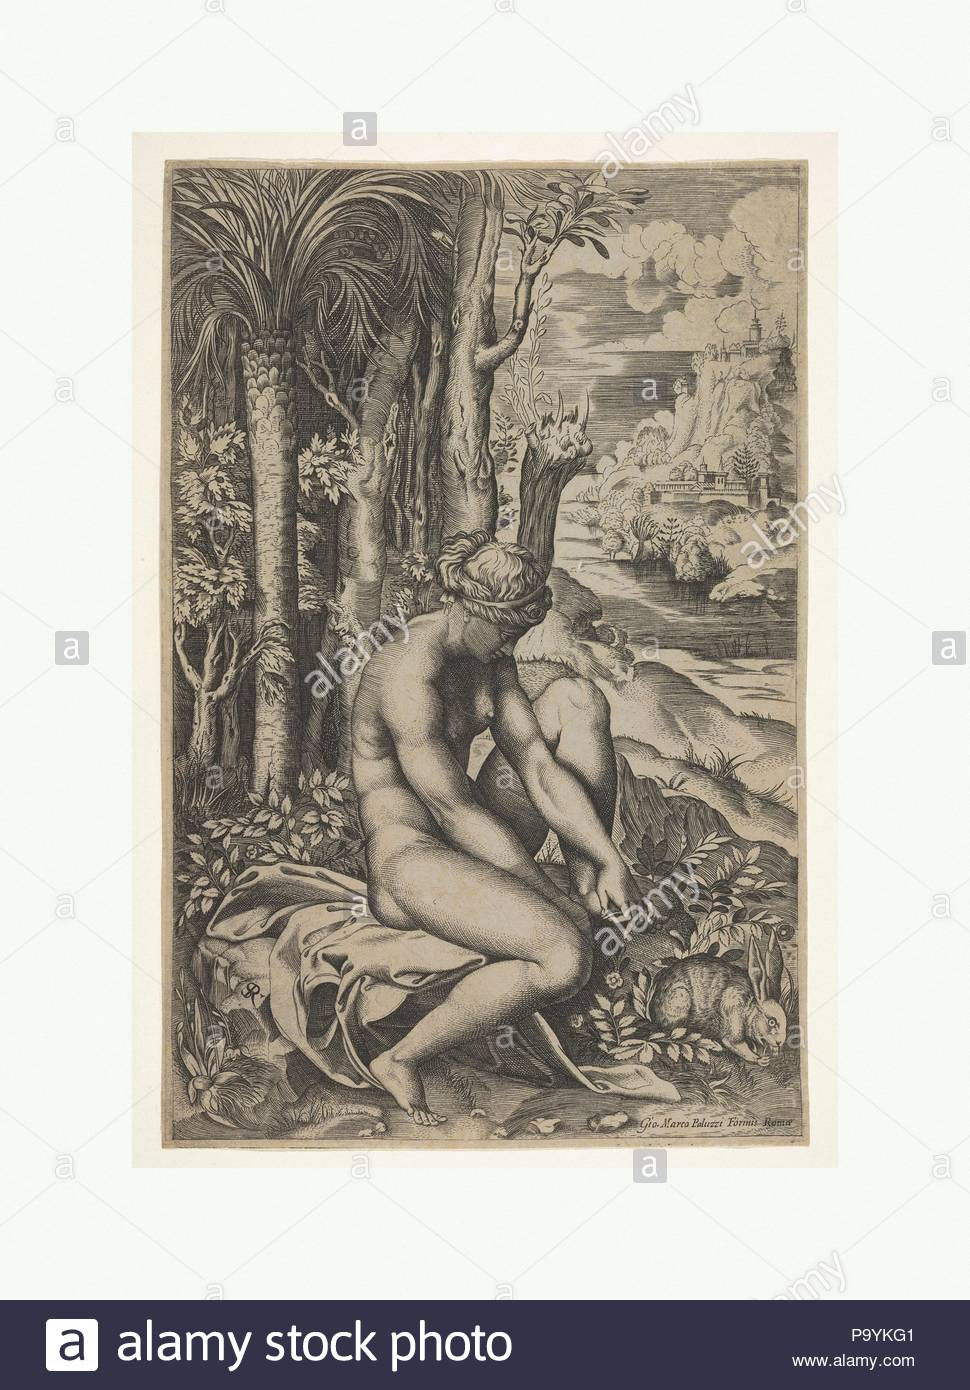 Venus removing a thorn from her left foot while seated on a cloth beside trees and foliage, a hare eating grass before her, ca. 1516, Engraving, Sheet (Trimmed): 10 1/2 × 6 7/8 in. (26.7 × 17.5 cm), Prints, Marco Dente (Italian, Ravenna, active by 1515–died 1527 Rome), After Raphael (Raffaello Sanzio or Santi) (Italian, Urbino 1483–1520 Rome). - Stock Image